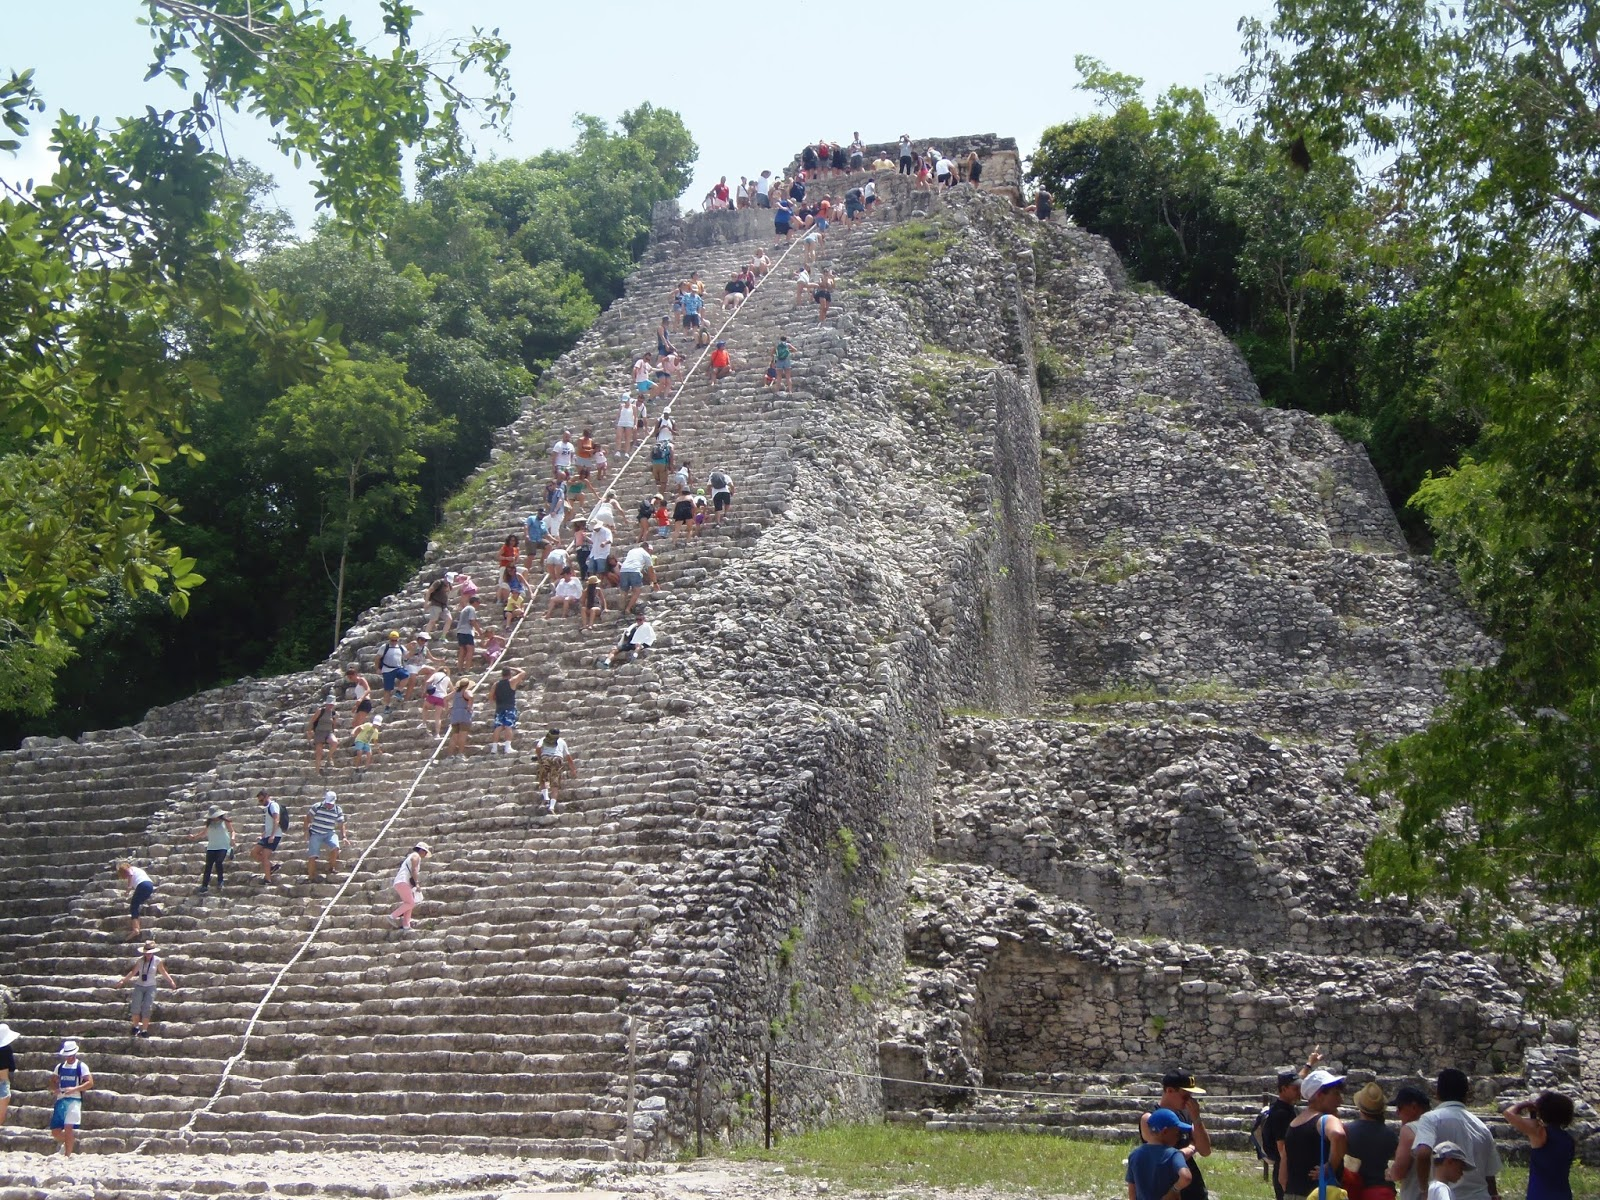 pyramid, climbing, mexico, mayan ruins, aztec, playa del carmen, holiday, travel, traveling, backpacking,